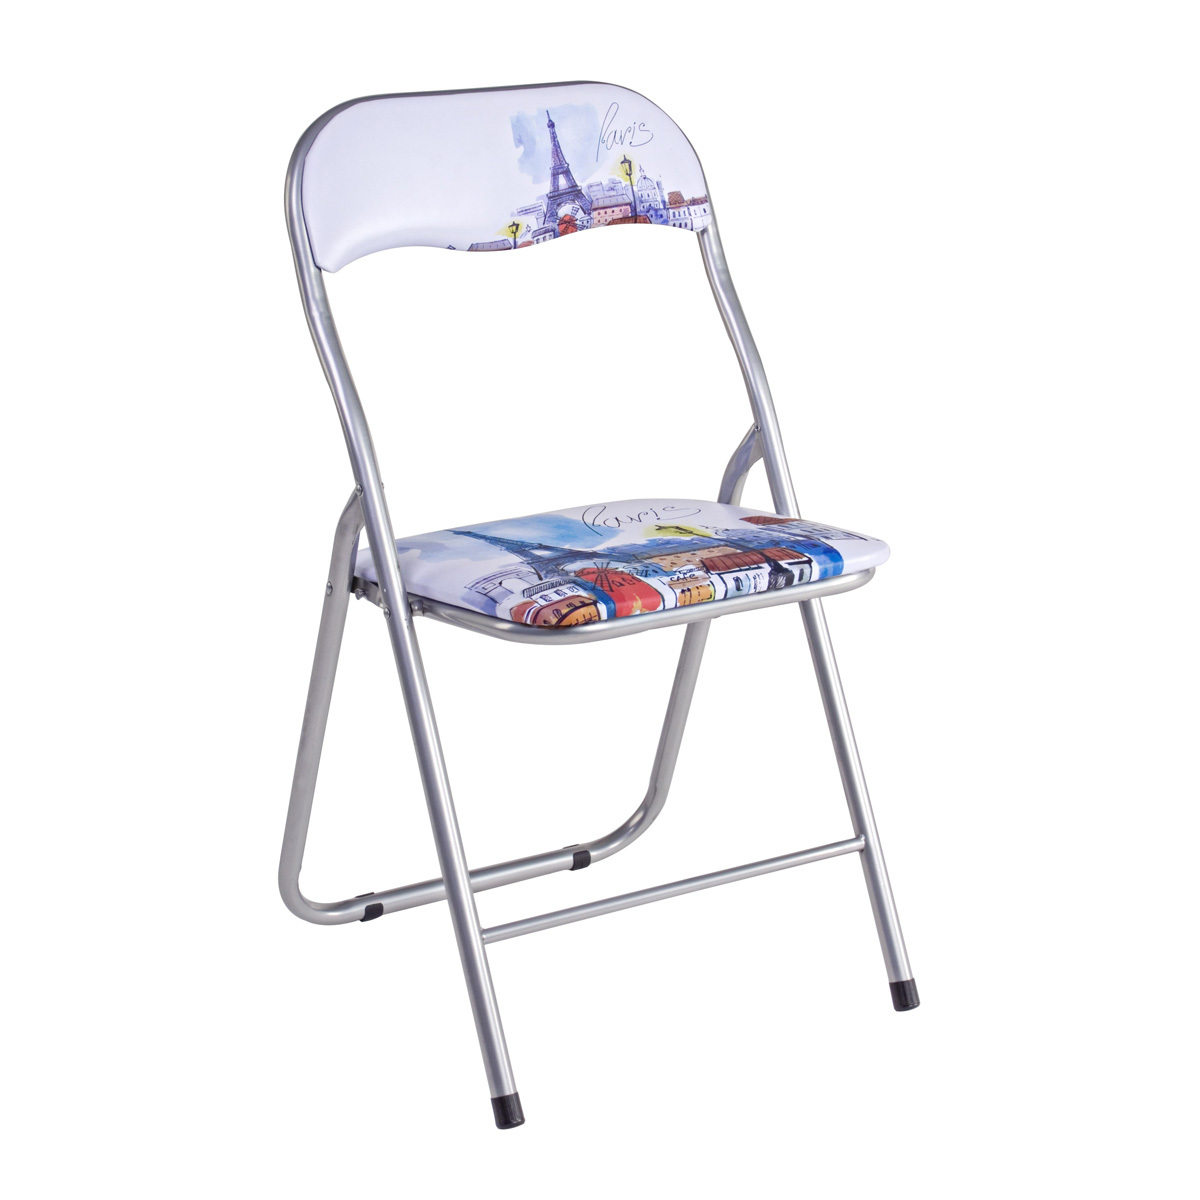 Photos 1: Bizzotto Folding chair in metal - paris 5730522